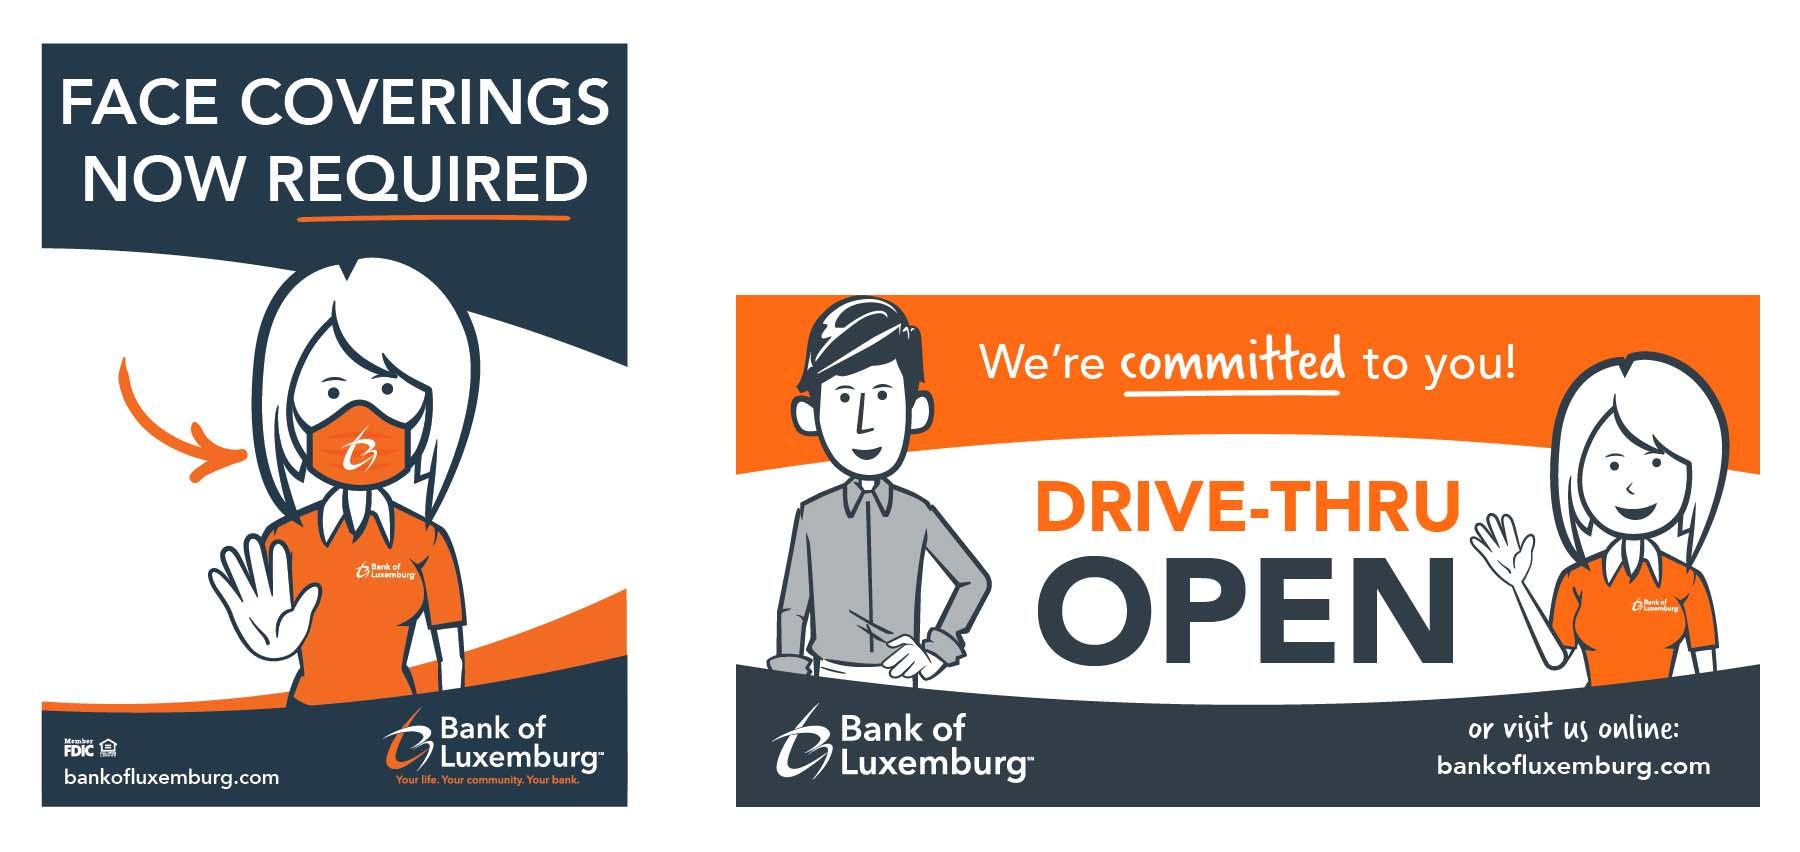 Bank of Luxemburg COVID-19 campaign effort